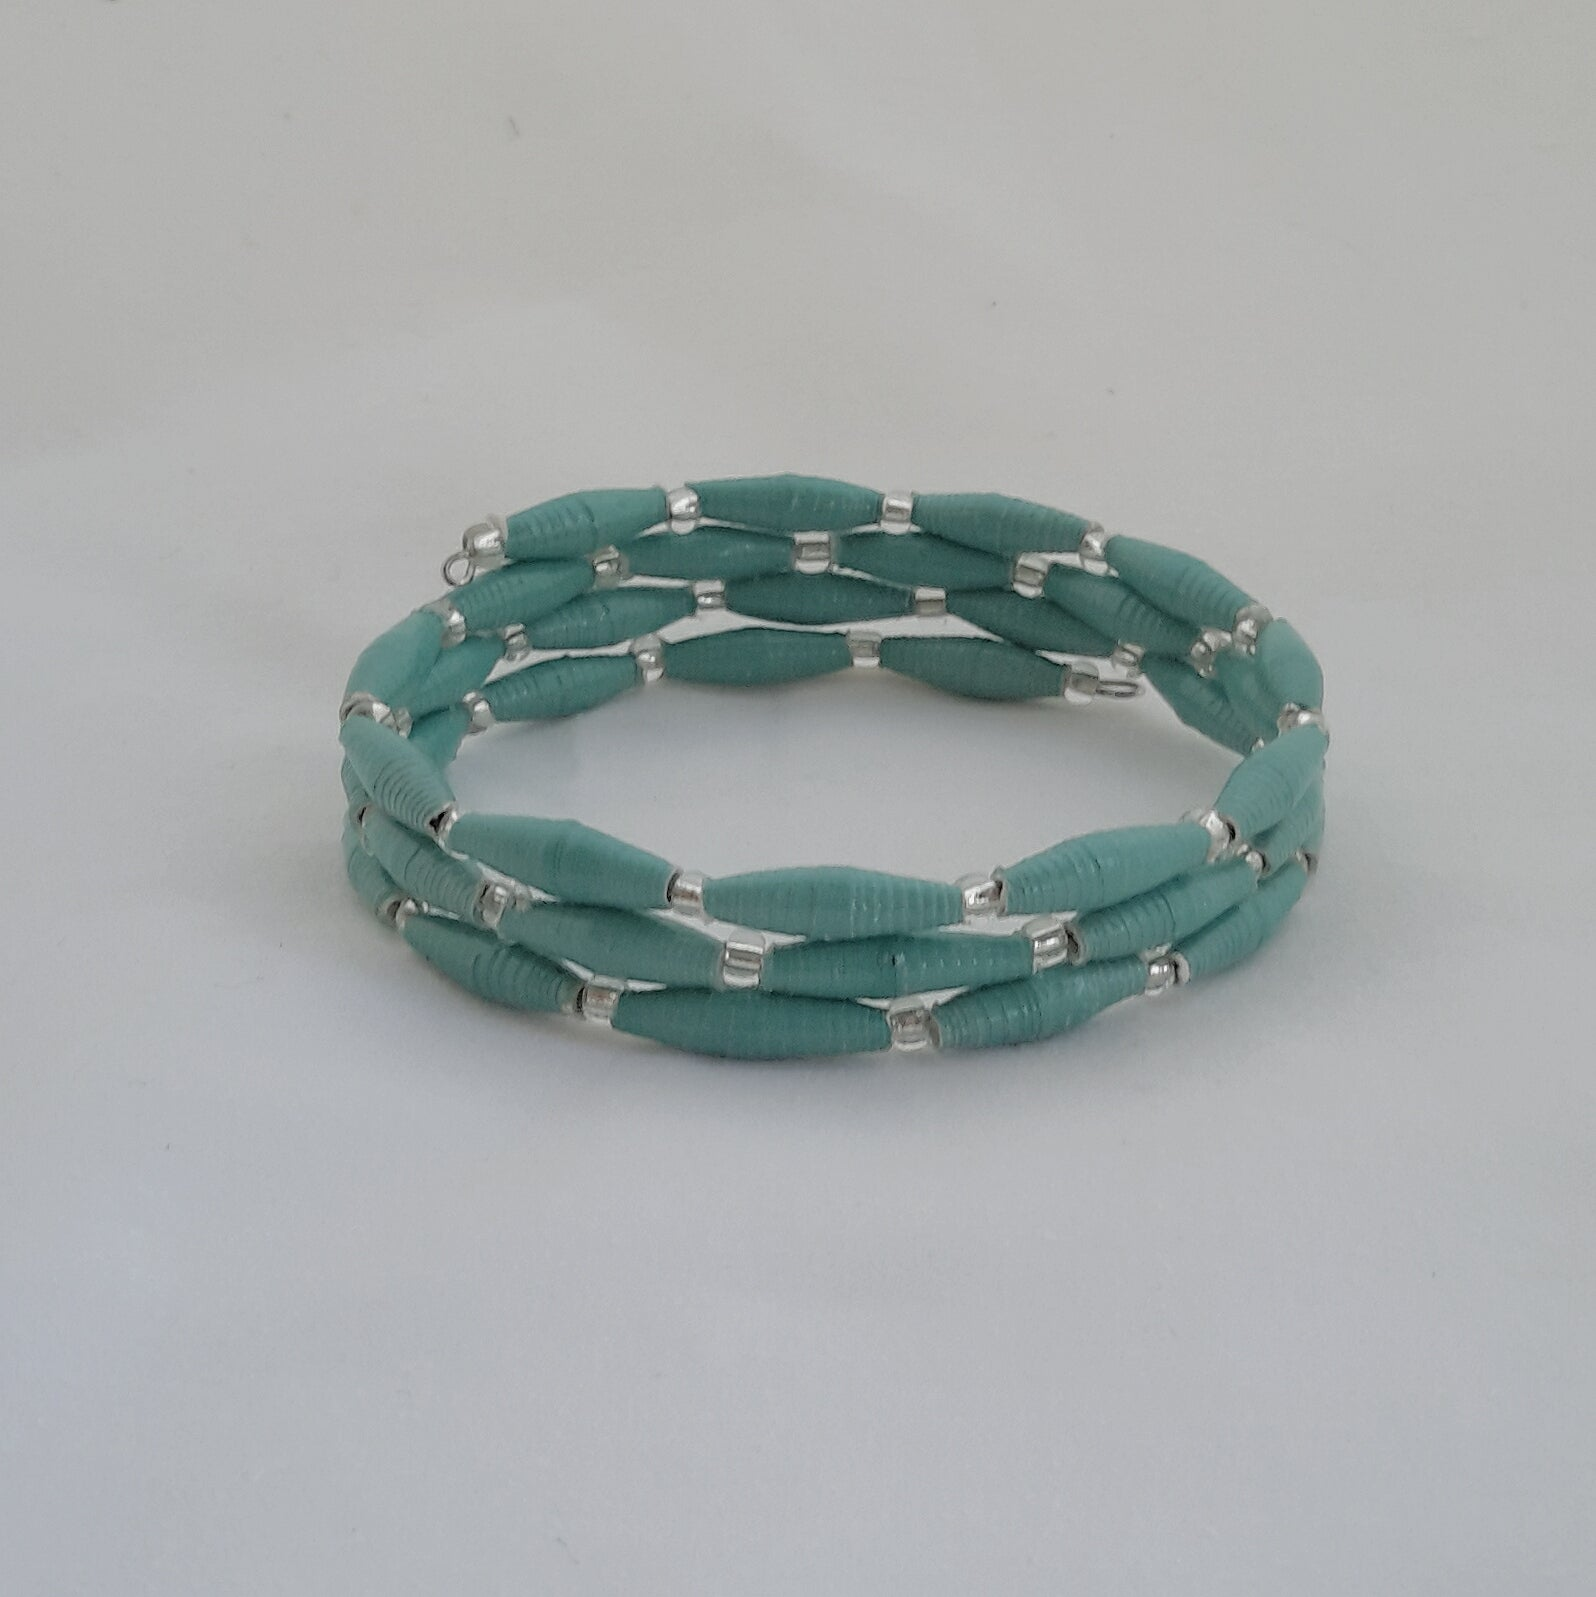 Aquamarine/turquoise hand made design paper bead bracelet made out of recycled paper in Uganda by principles of fair trade, ethical and sustainable fashion, empowering women of post war area, by Finnish / Scandinavian brand, Agulu Paper Beads. Eettinen turkoosi/vedenvihreä käsintehty design rannekoru, joka on tehty kierrätyspaperista reilun kaupan periaattein työllistämällä kehitysmaan nasia.